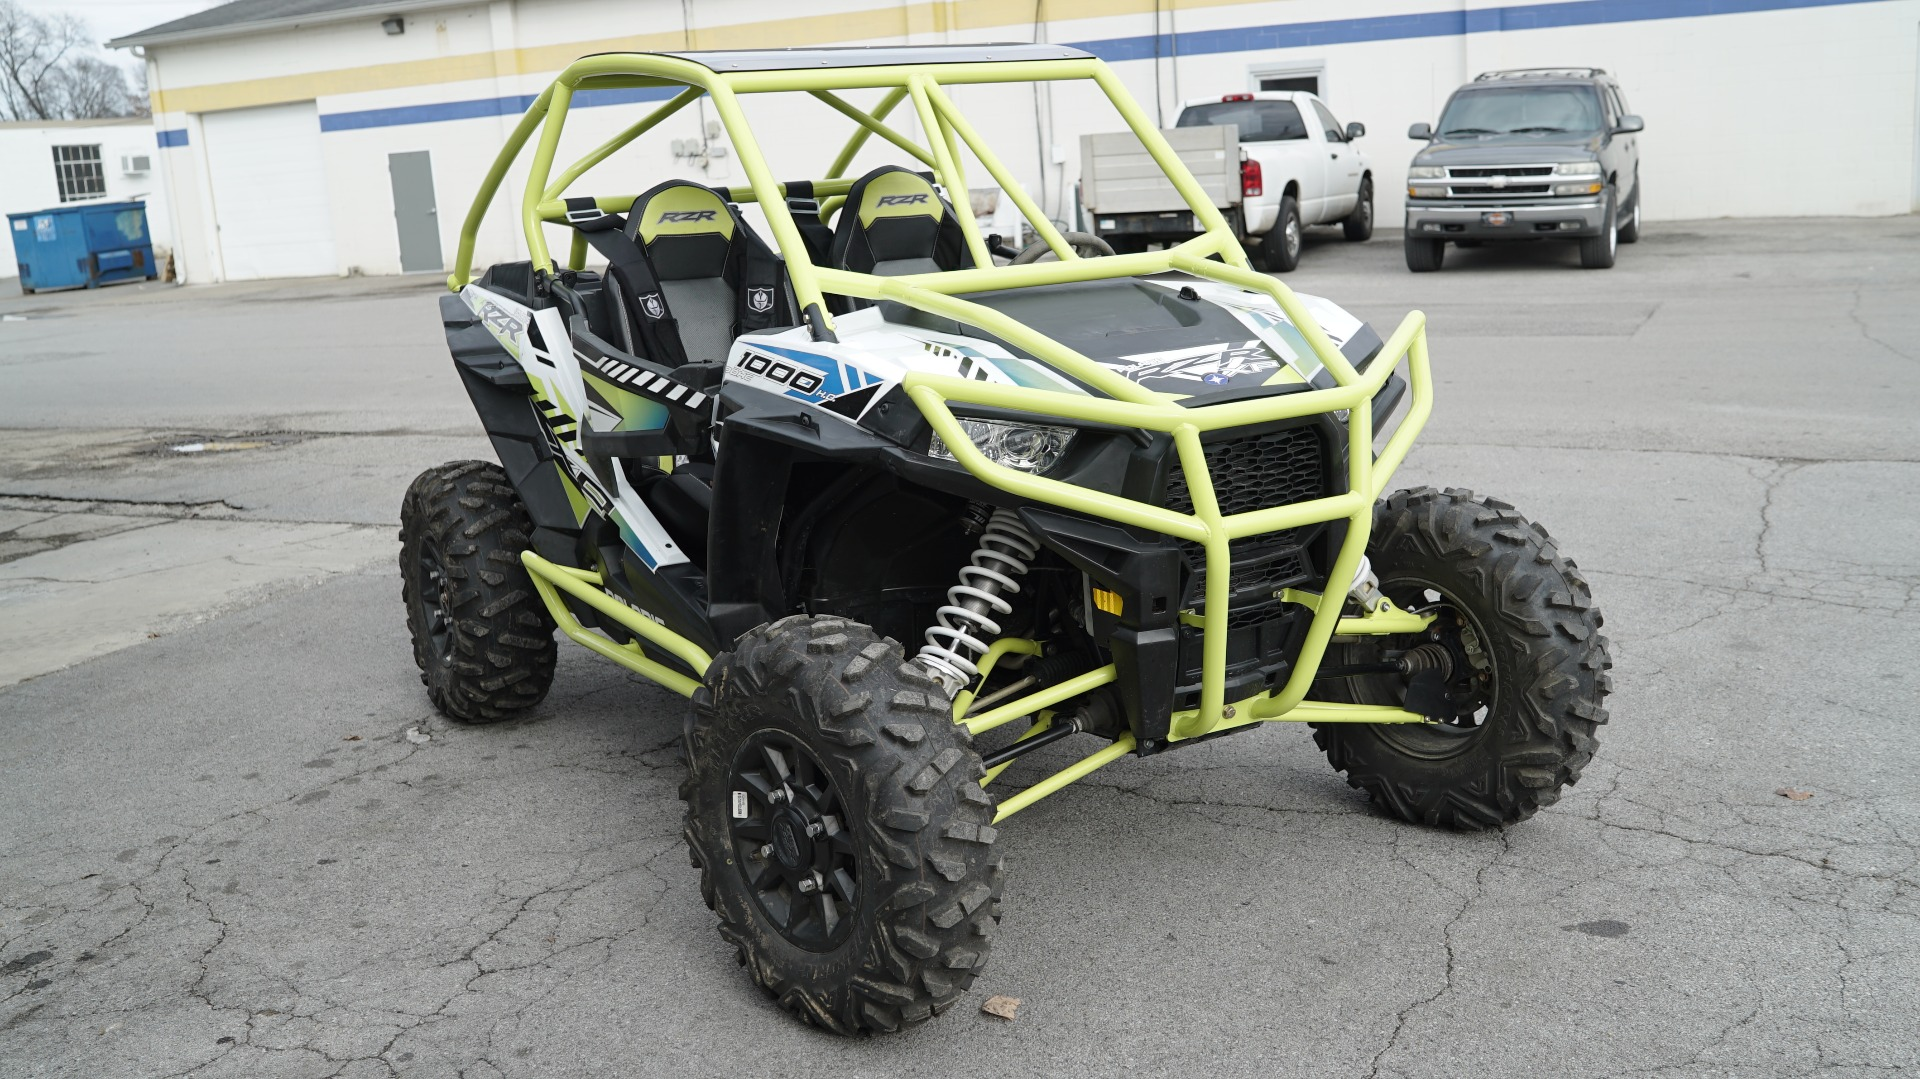 Polaris RZR 1000 with Yellow Roll Cage Image 15